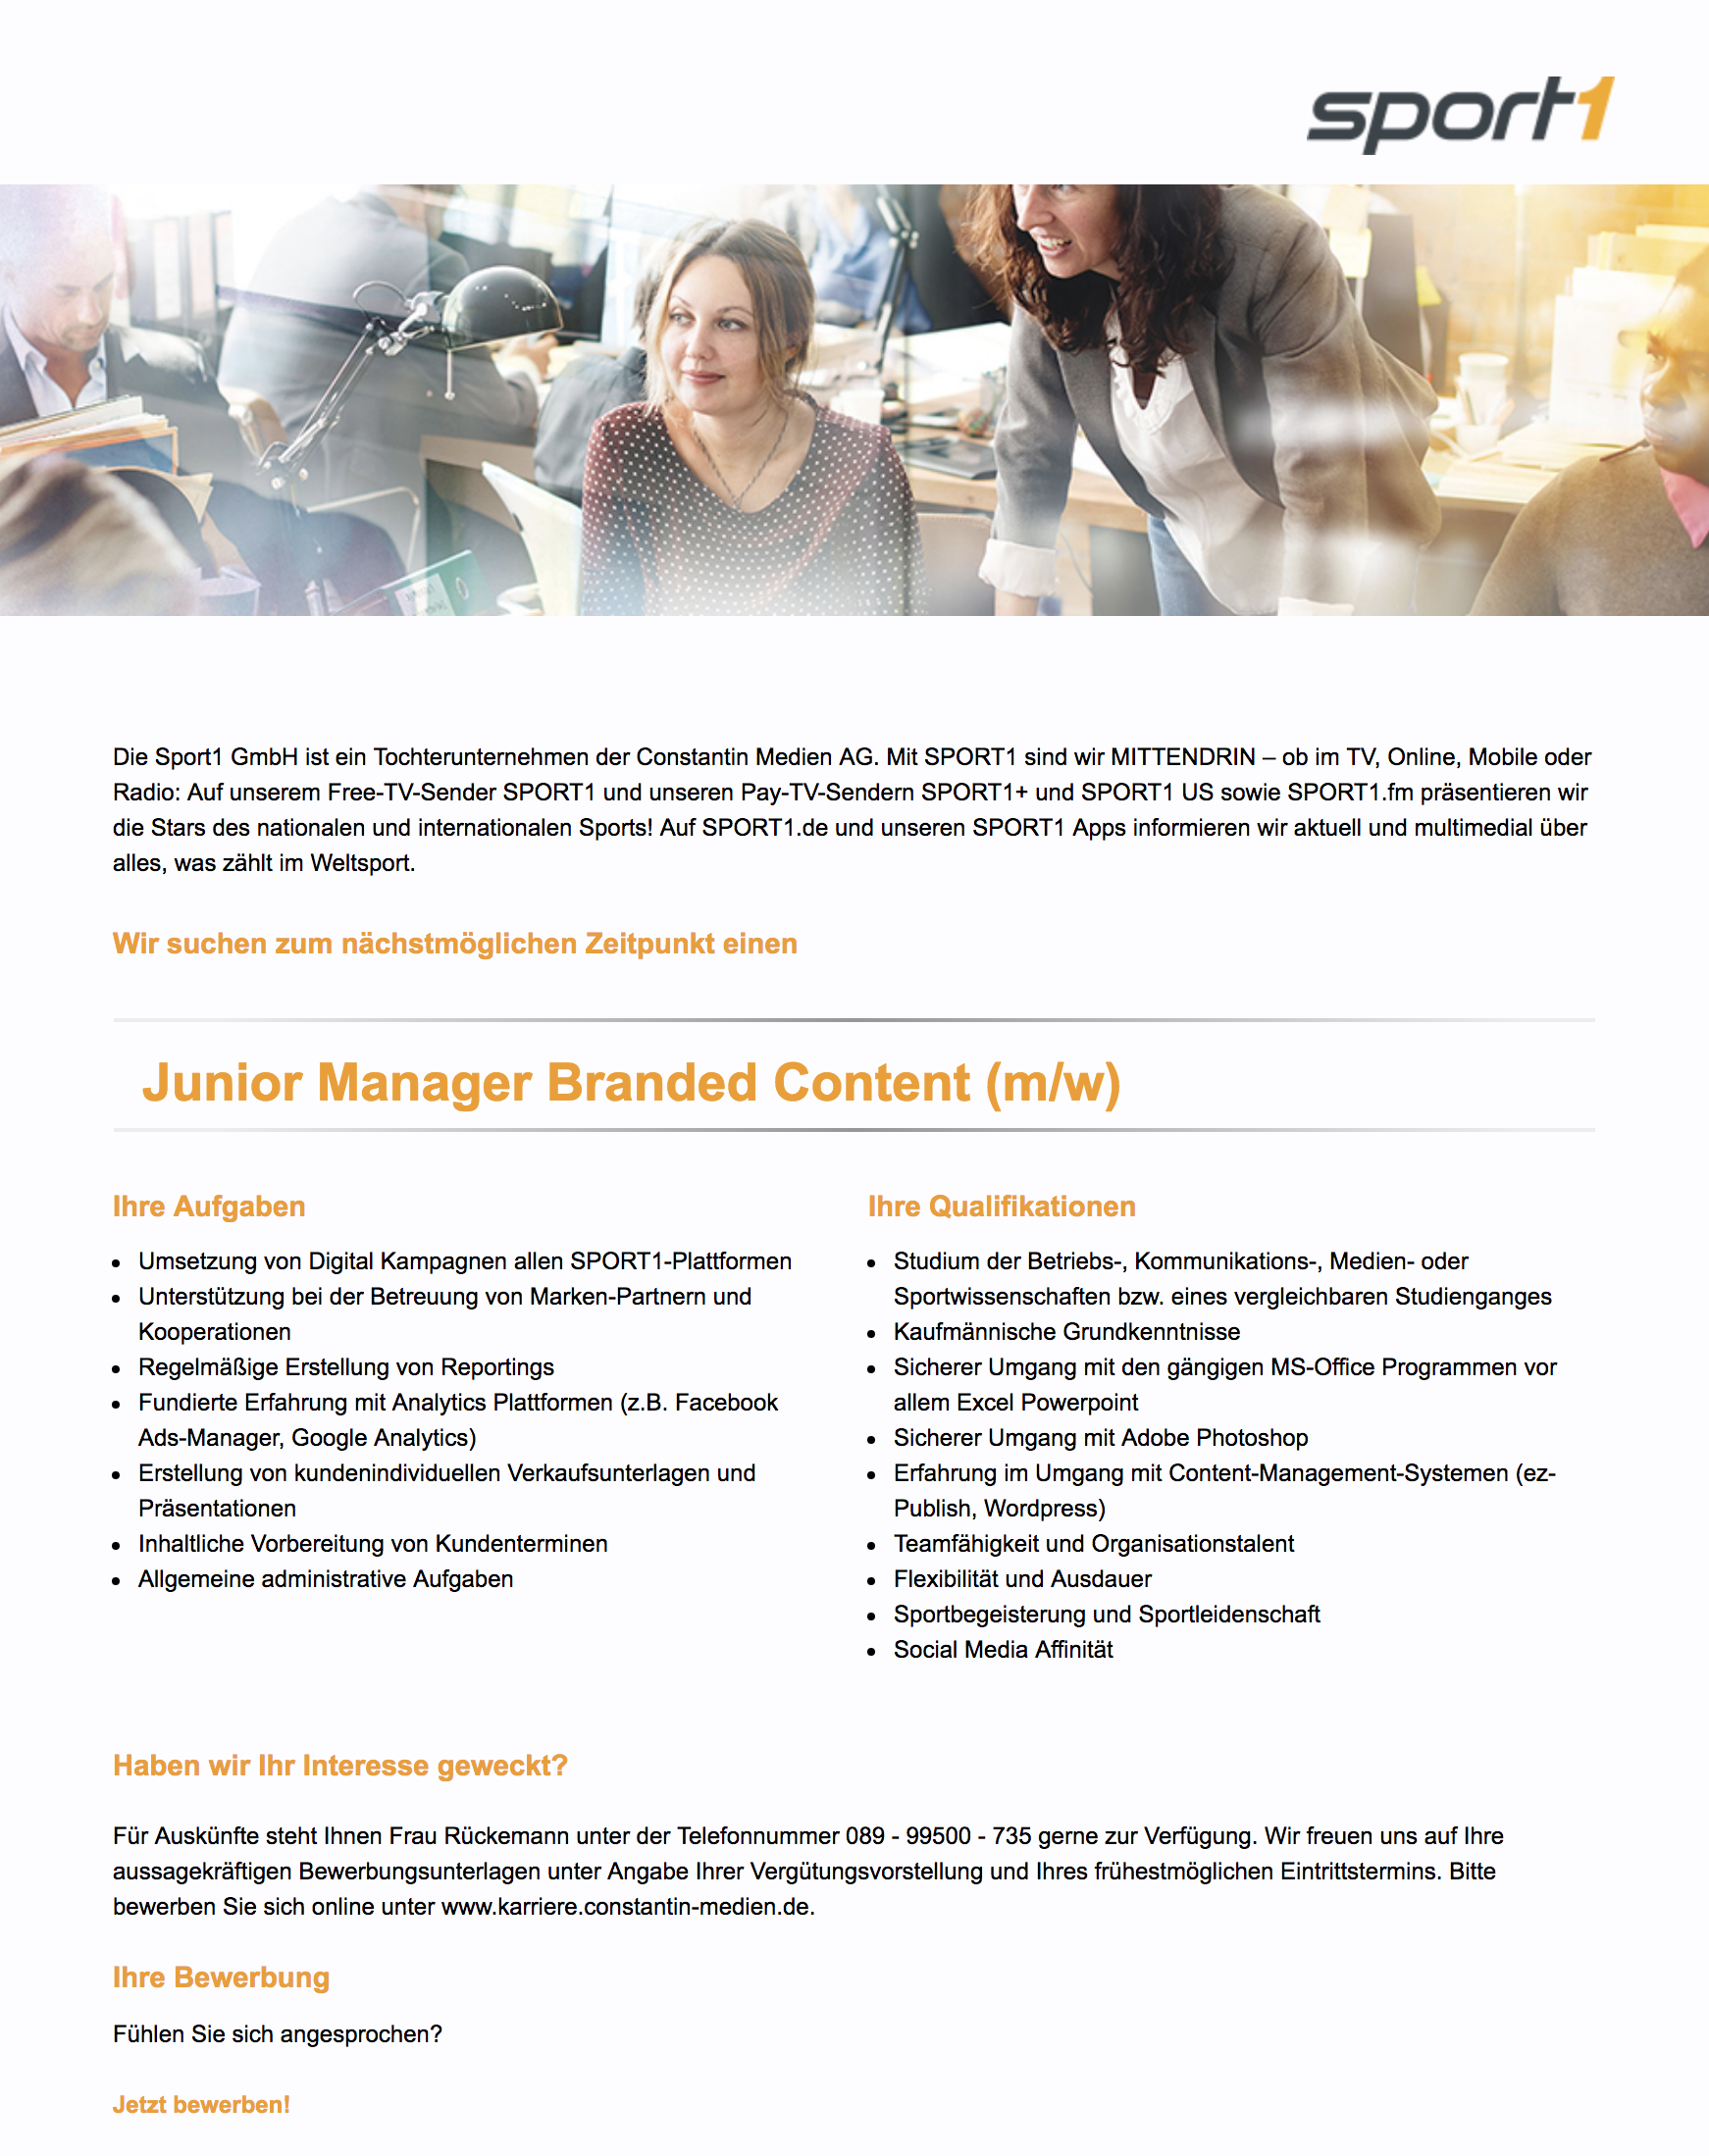 Junior Manager Branded Content (m/w)